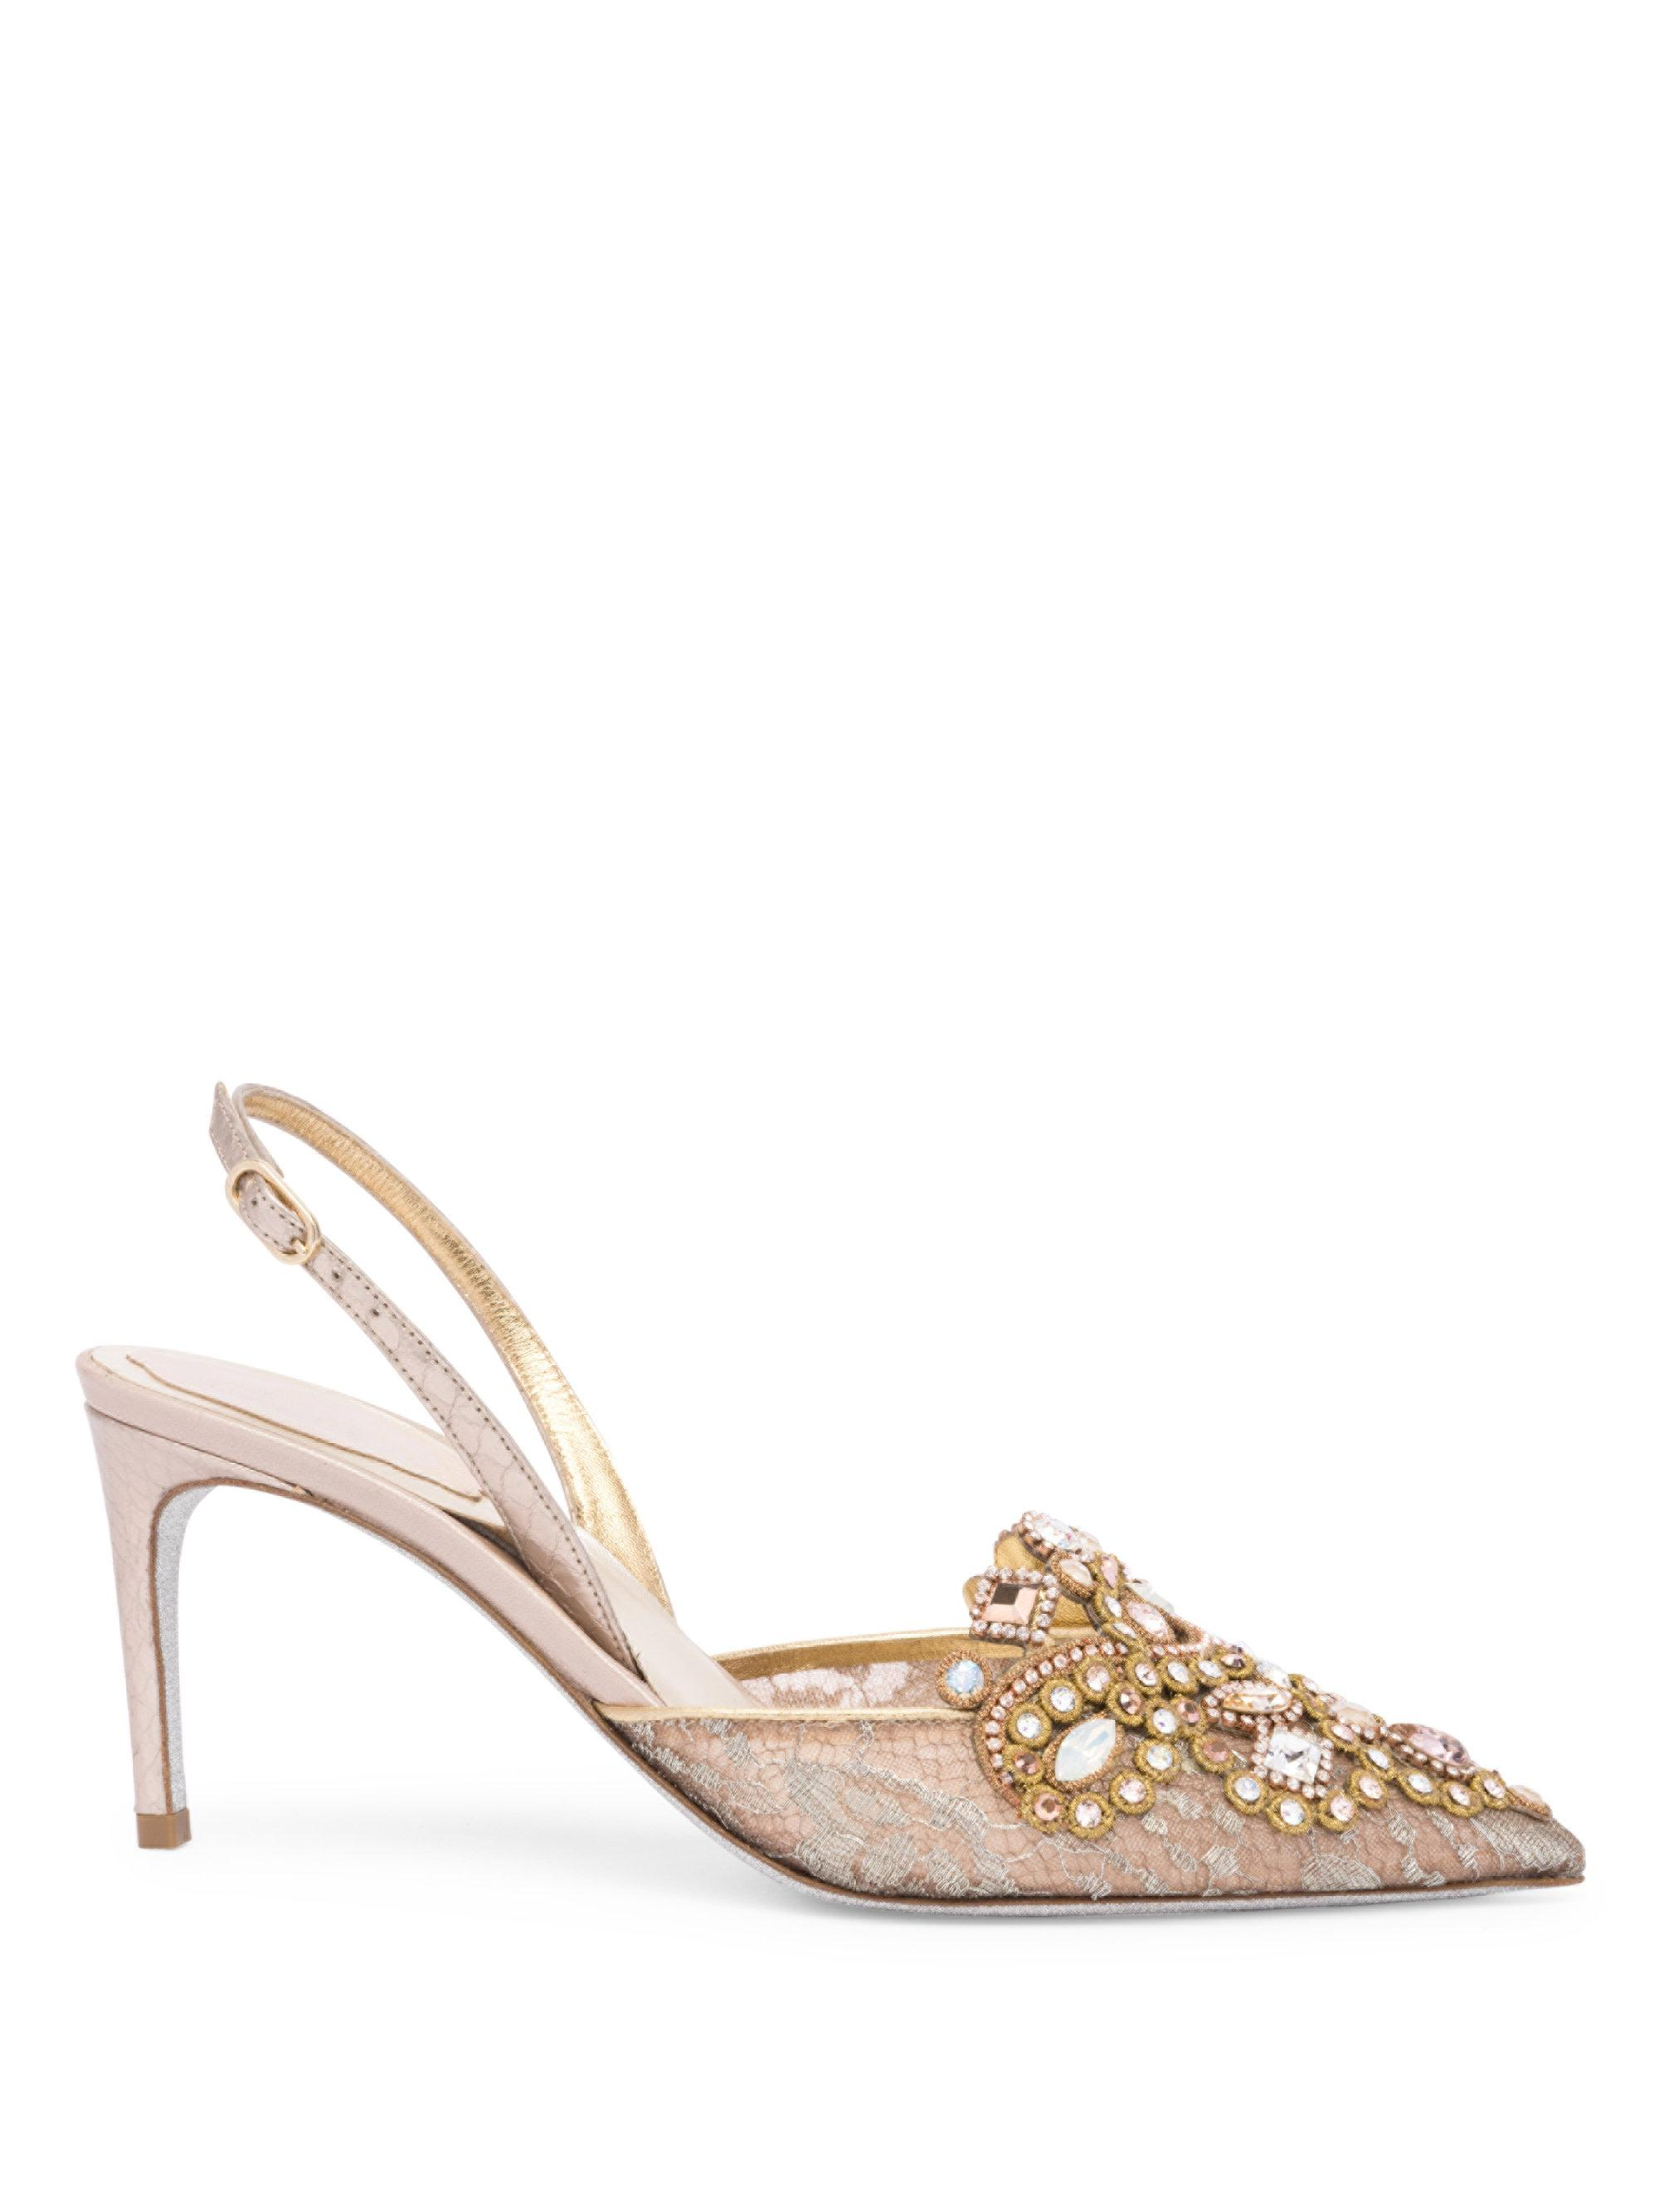 René Caovilla Rene Caovilla Embroidered Slingback Pumps cheap amazing price fast delivery cheap price outlet cheap prices free shipping wholesale price clearance fast delivery M9KiM3VLb